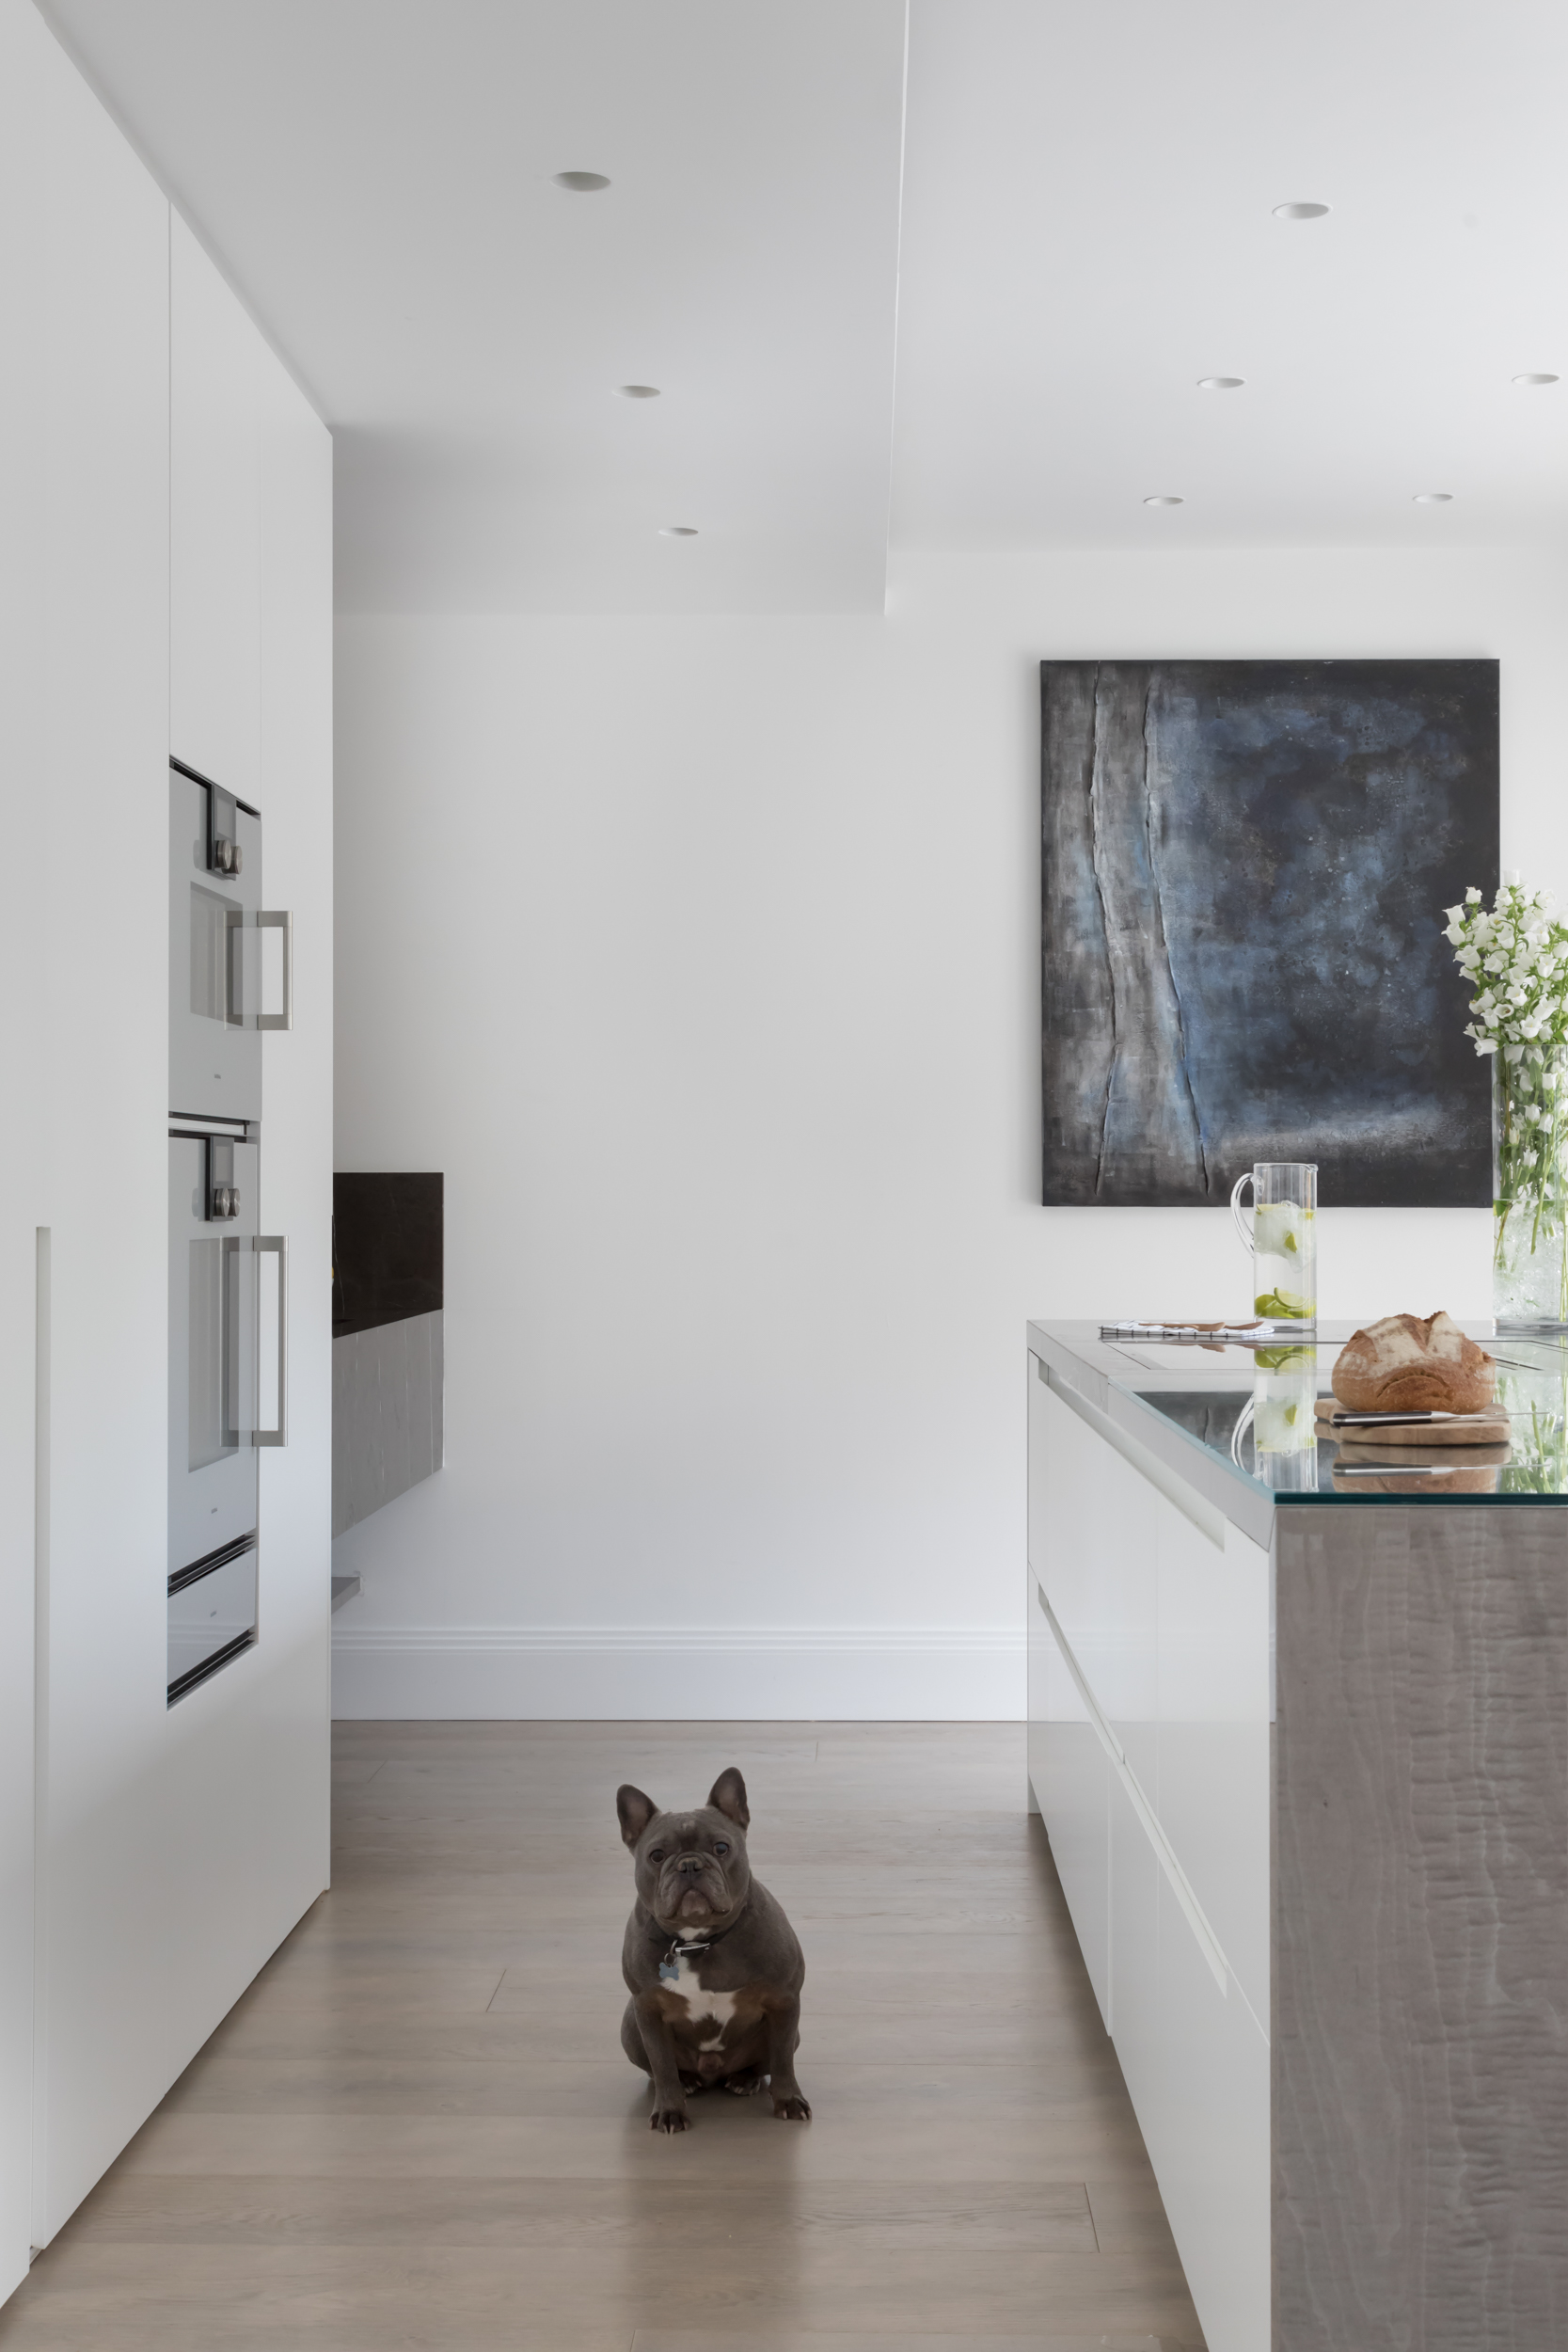 Paul Craig Interior Photographer, People Photography, Dog in Kitchen